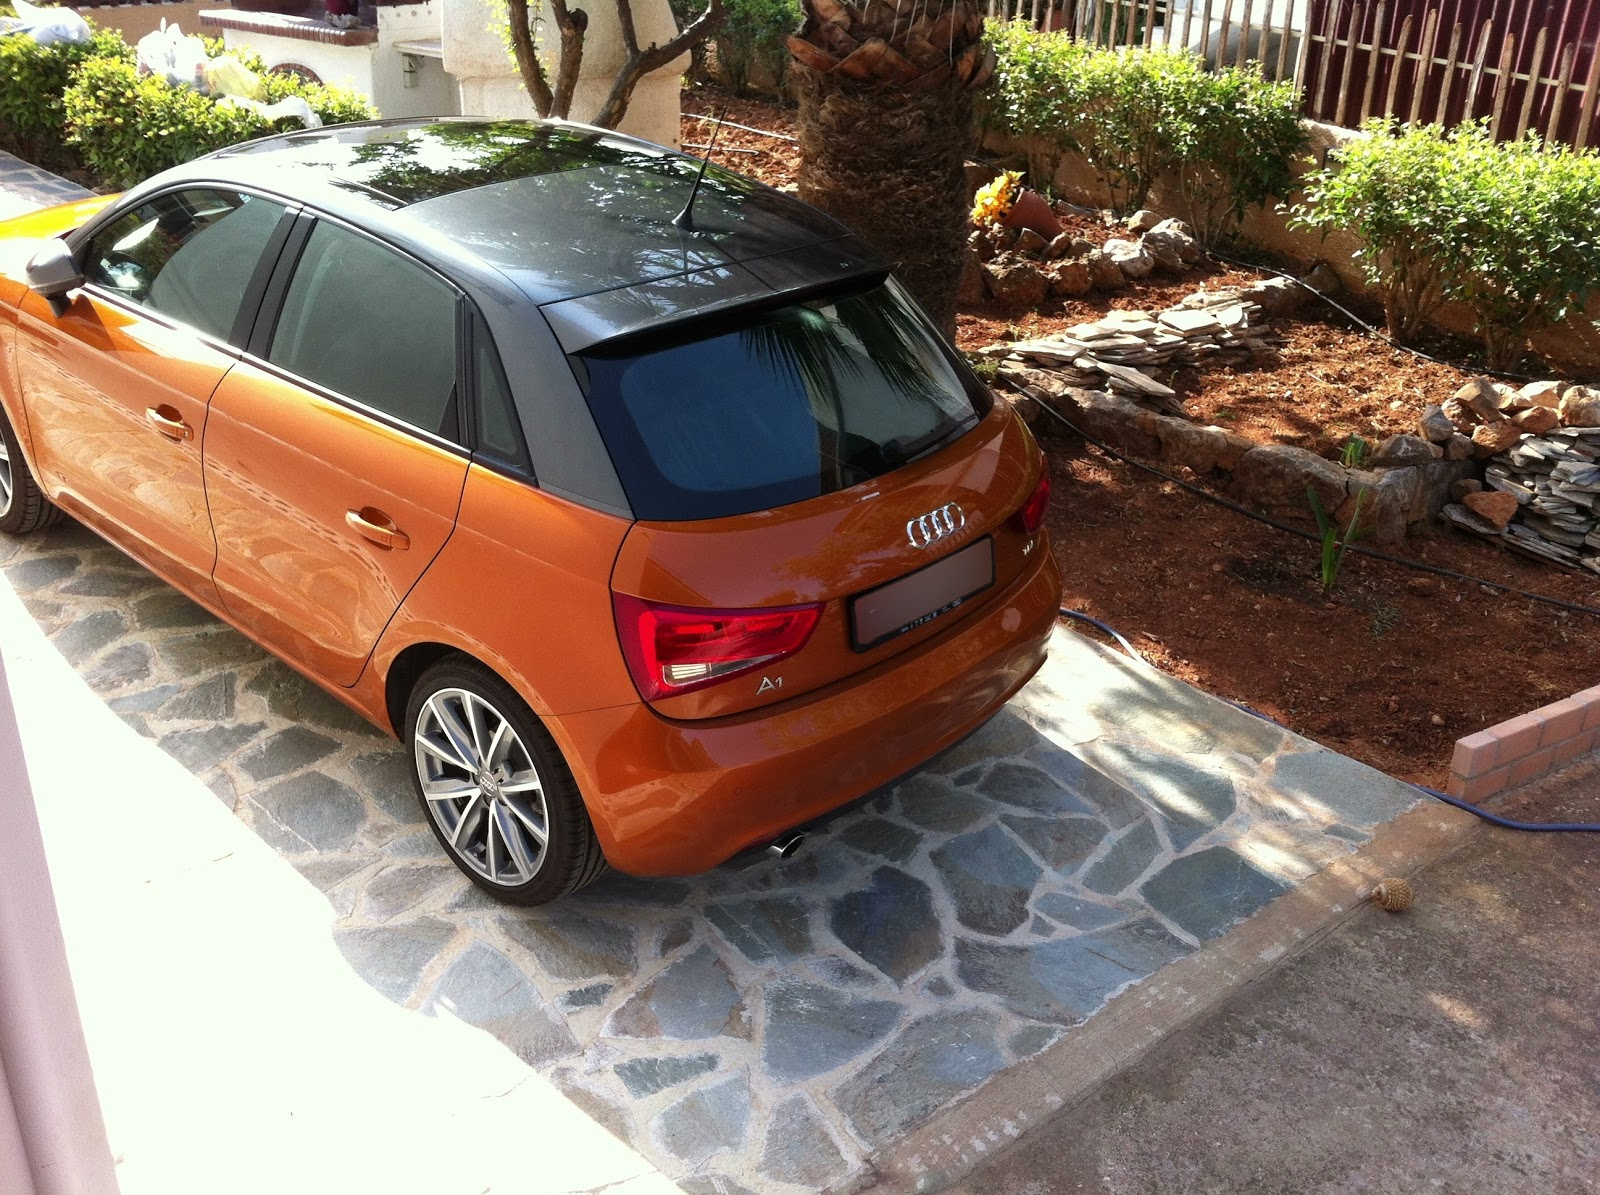 Audi+A1+Samoa+Orange+Daytona+Grey++8.jpg